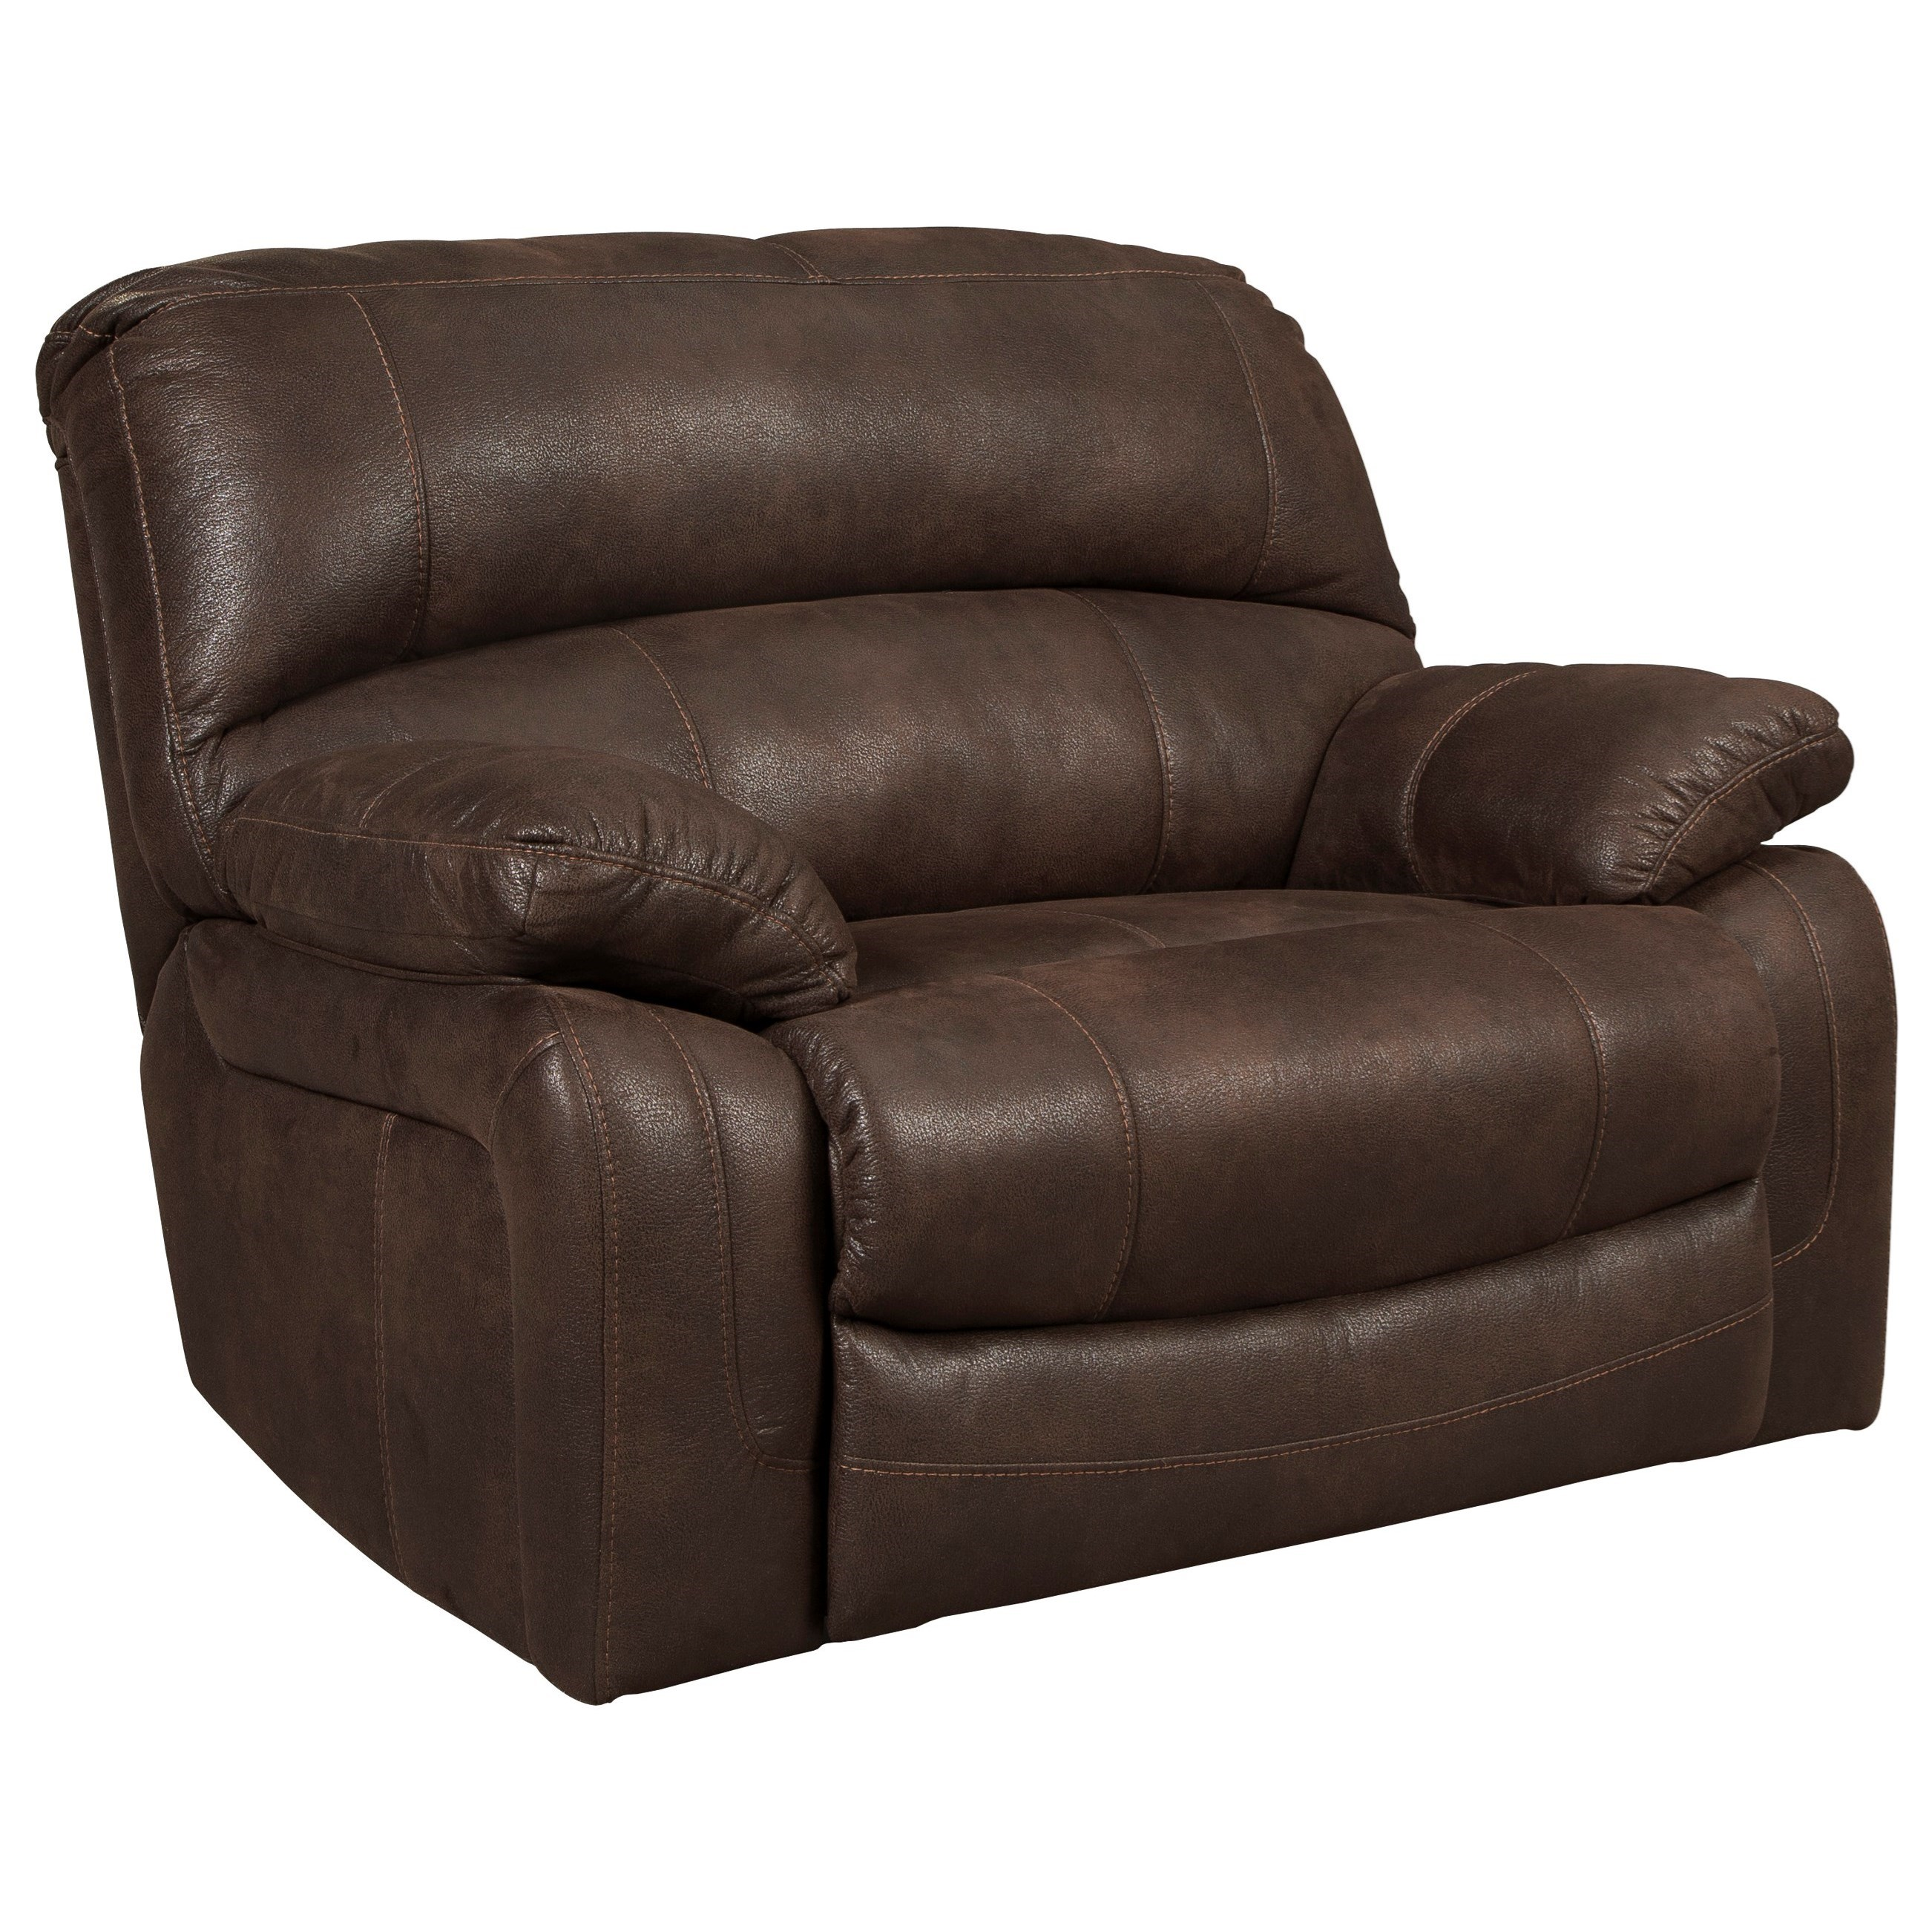 signature design by ashley zavier wide seat recliner in brown faux leather value city. Black Bedroom Furniture Sets. Home Design Ideas